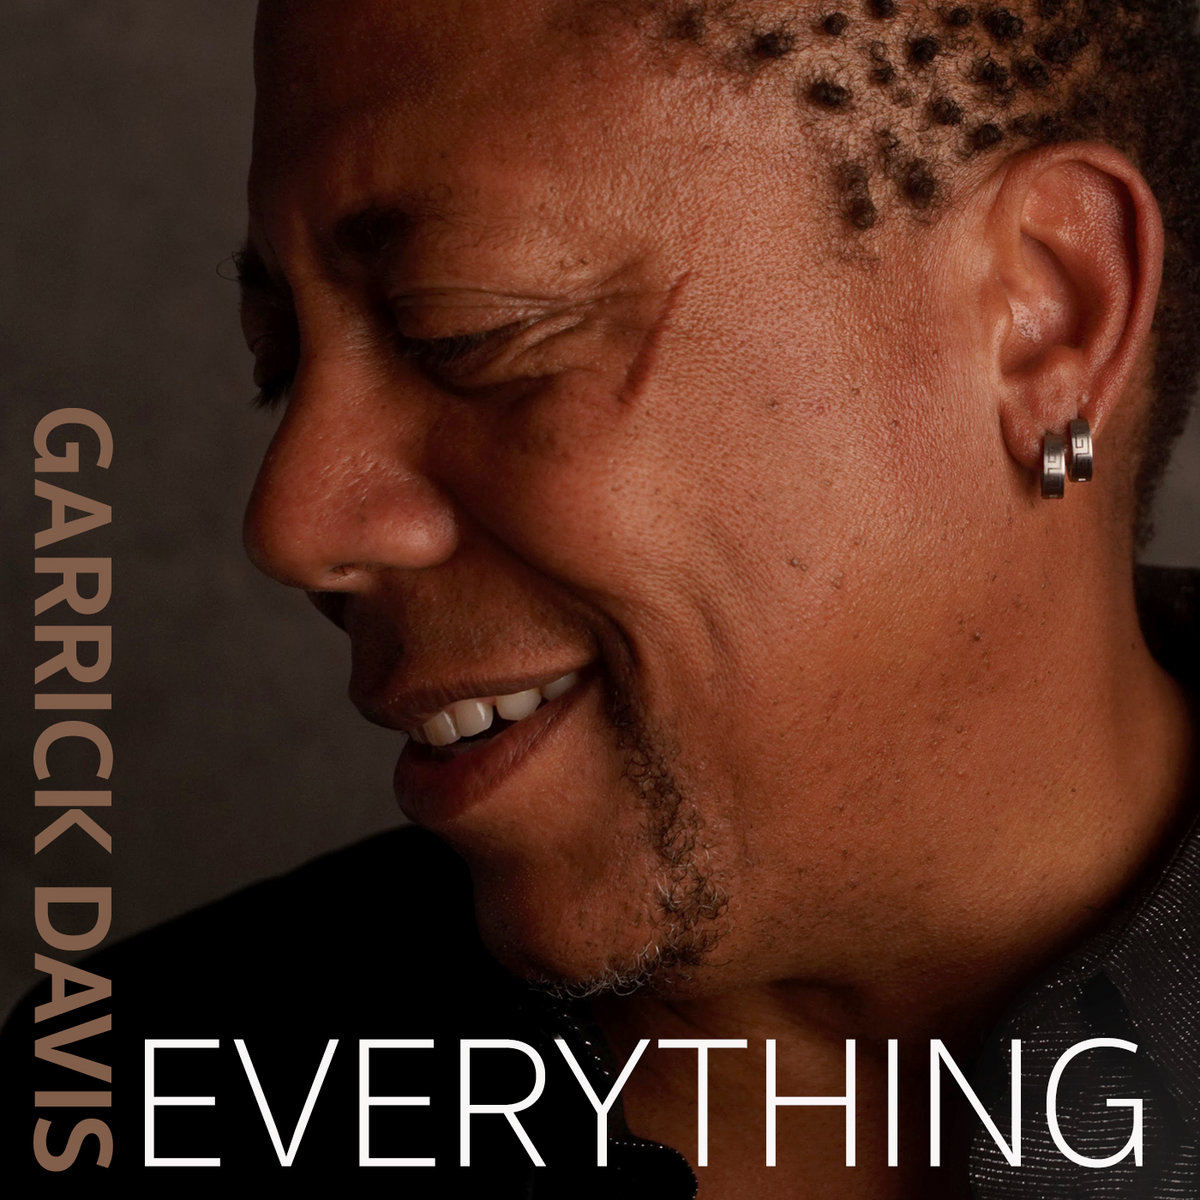 Everything - Single by Garrick Davis